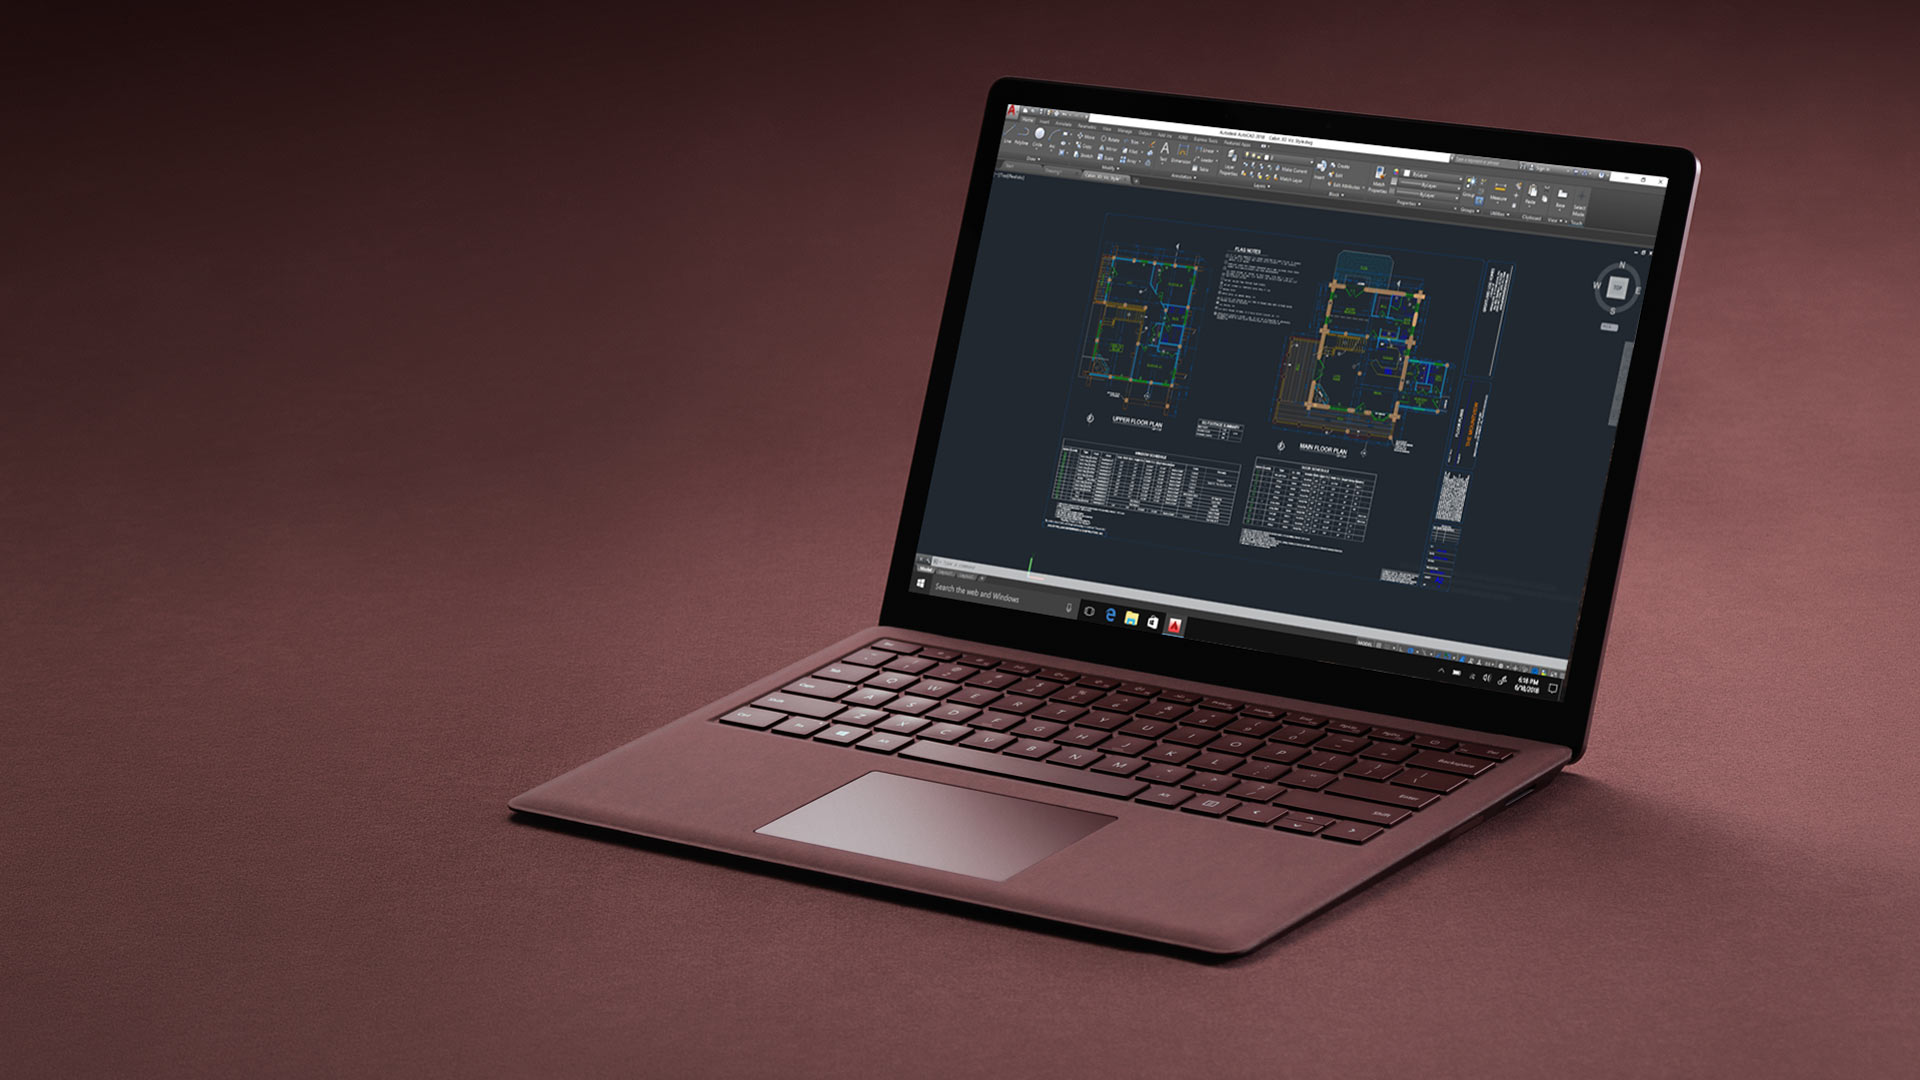 Surface Laptop in Bordeaux Rot mit AutoCAD-Bildschirm.